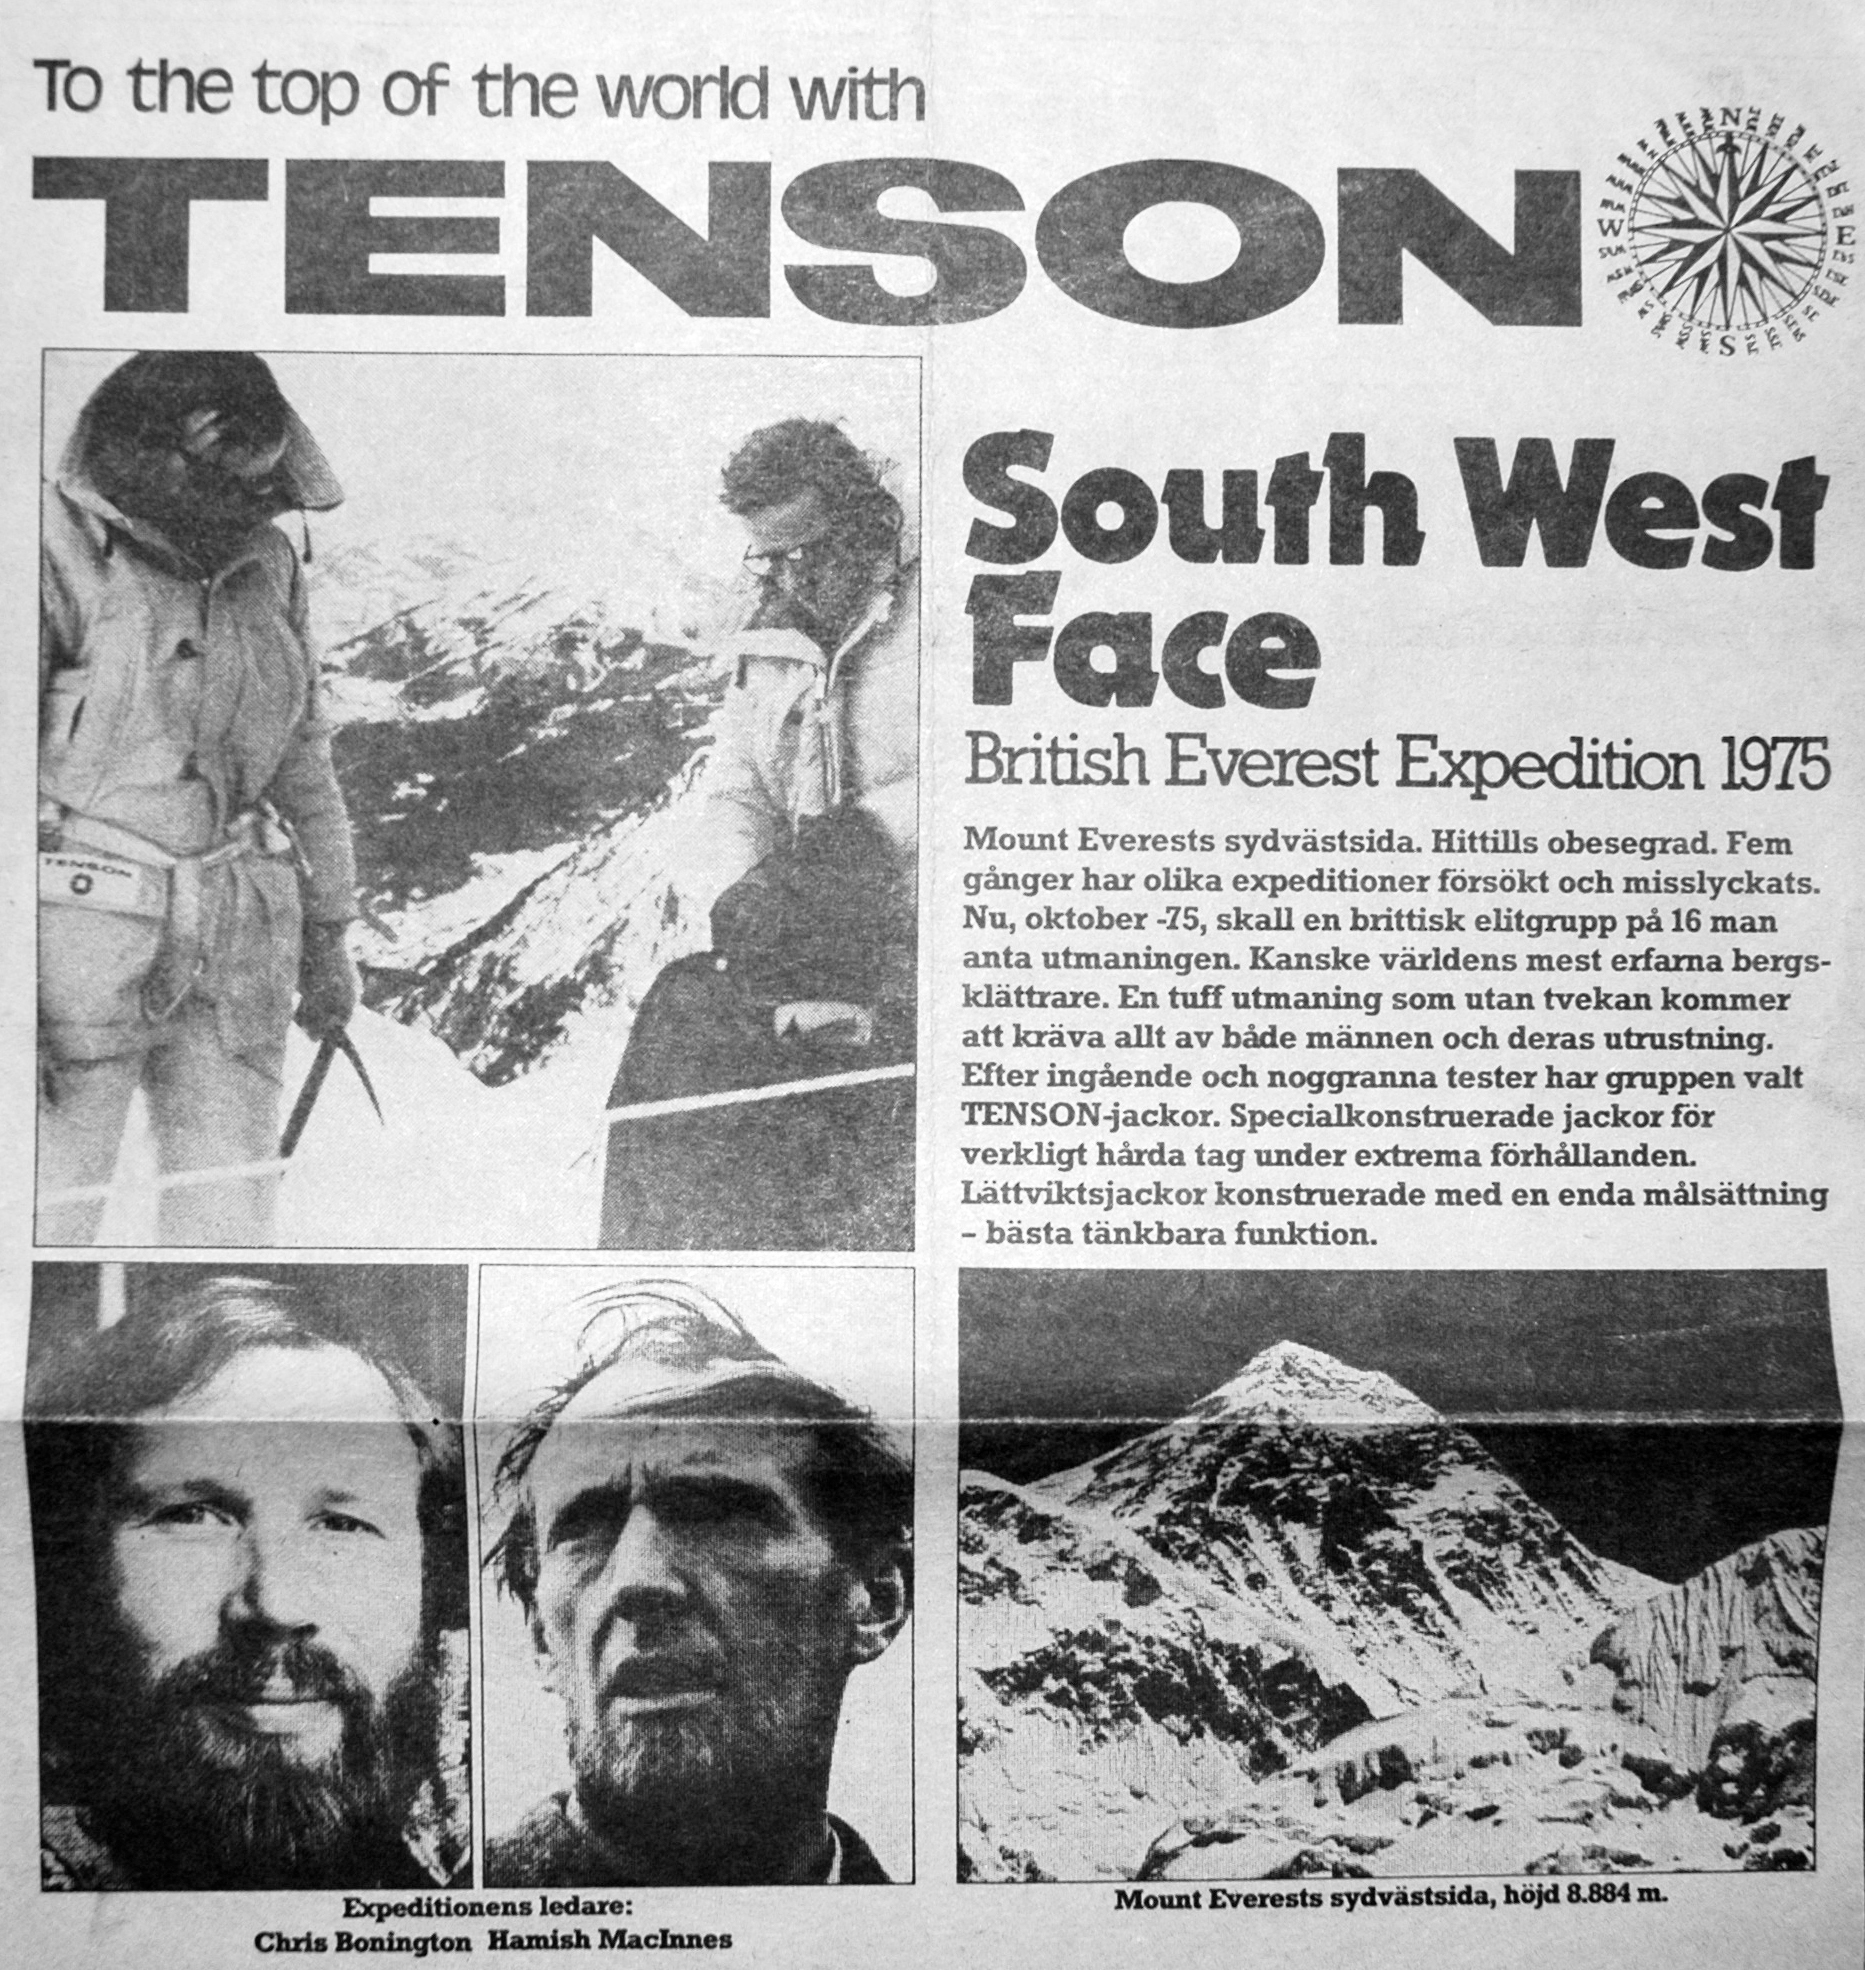 SOUTH WEST FACE - British Everest Expedition 1975 - TENSON